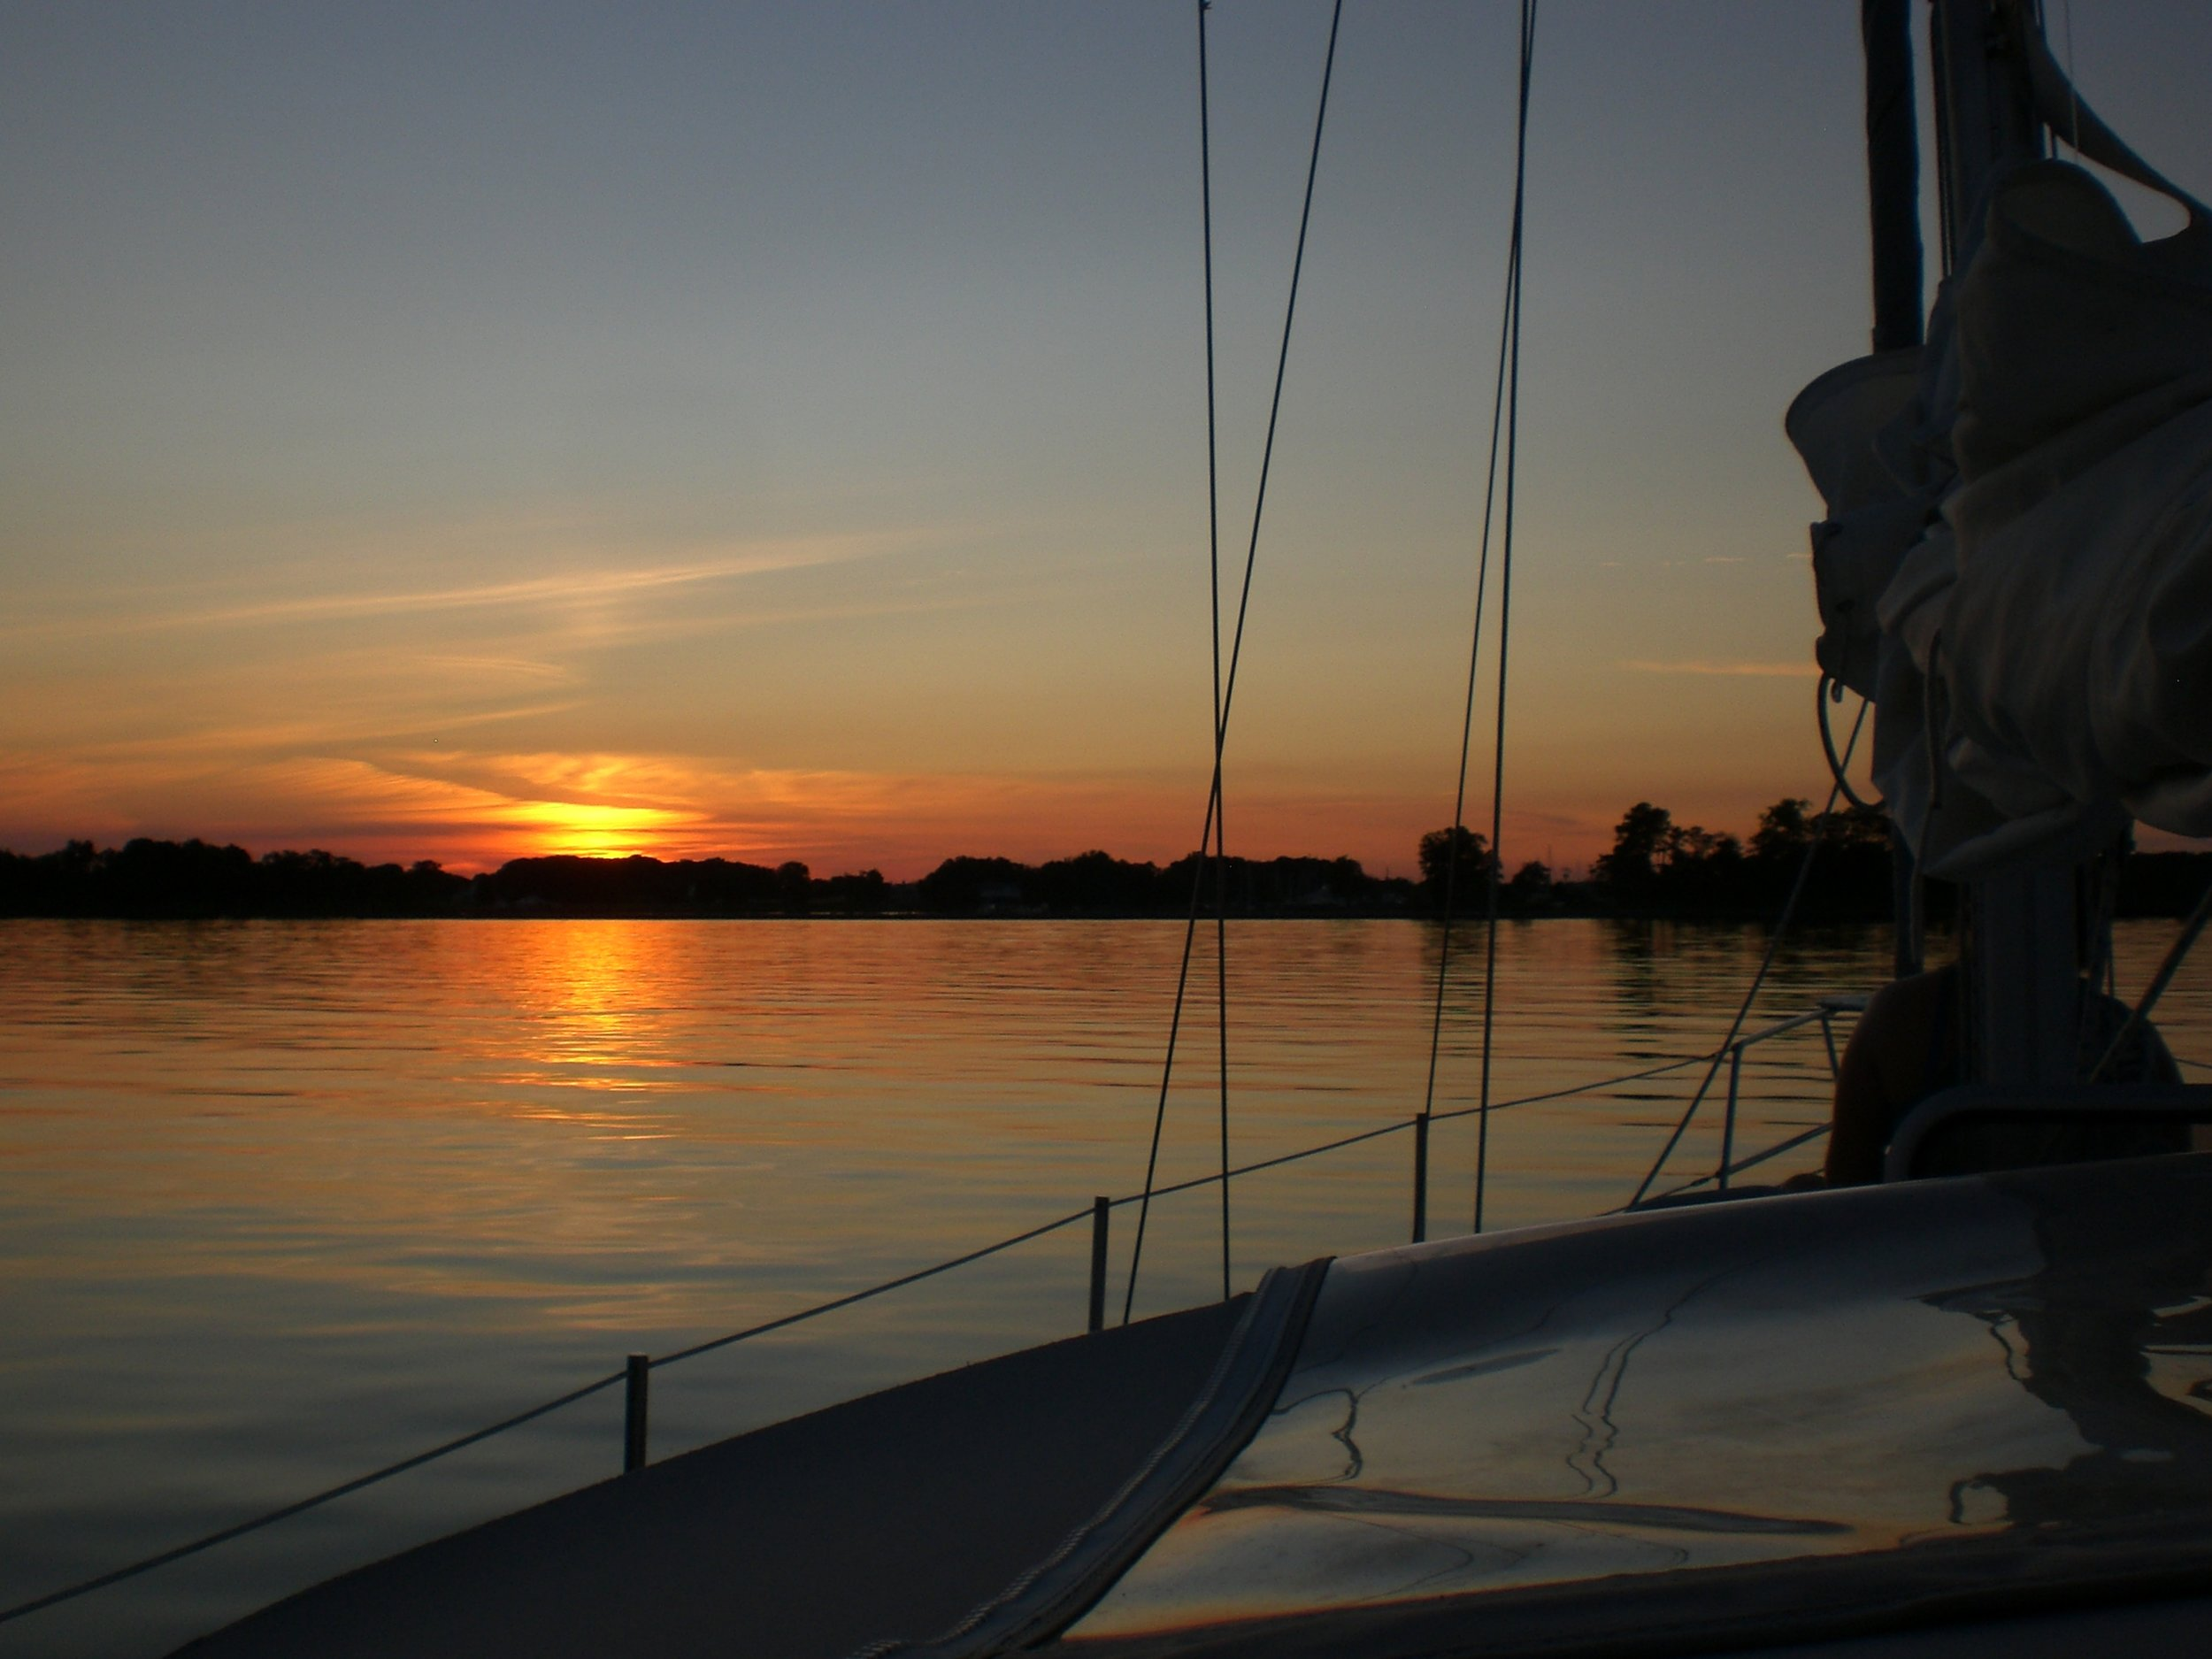 Sunset from a sailboat on the Bay